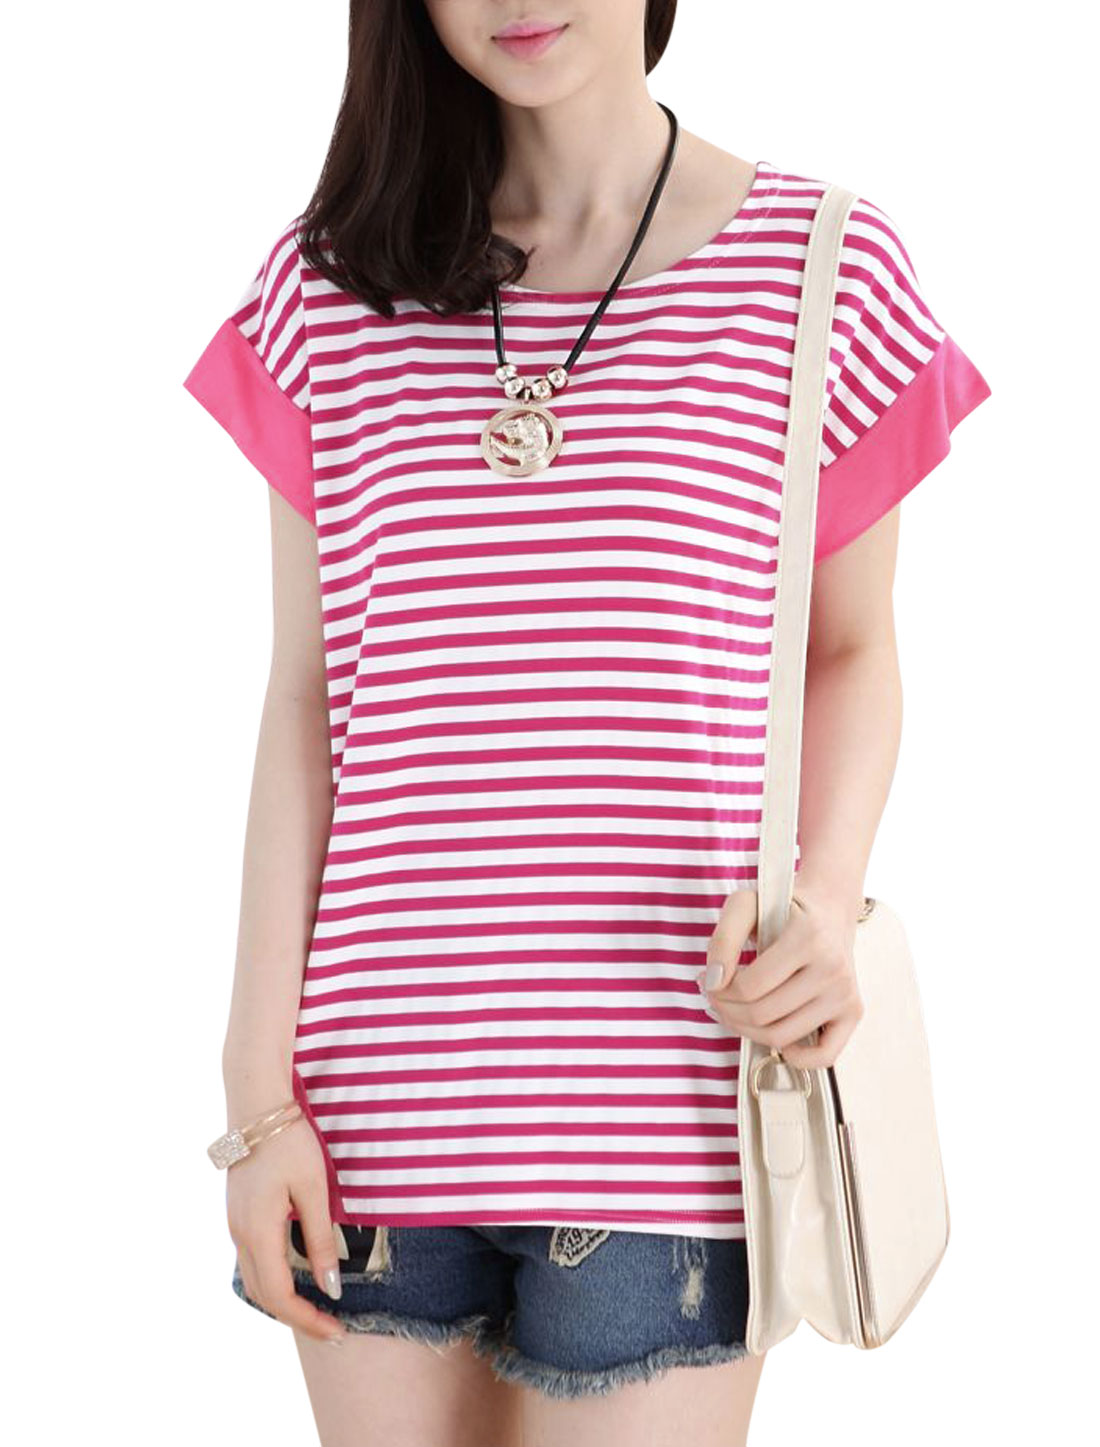 Lady Short Sleeve Bar Striped Panel Design Loose Fit T-Shirt Fuchsia M